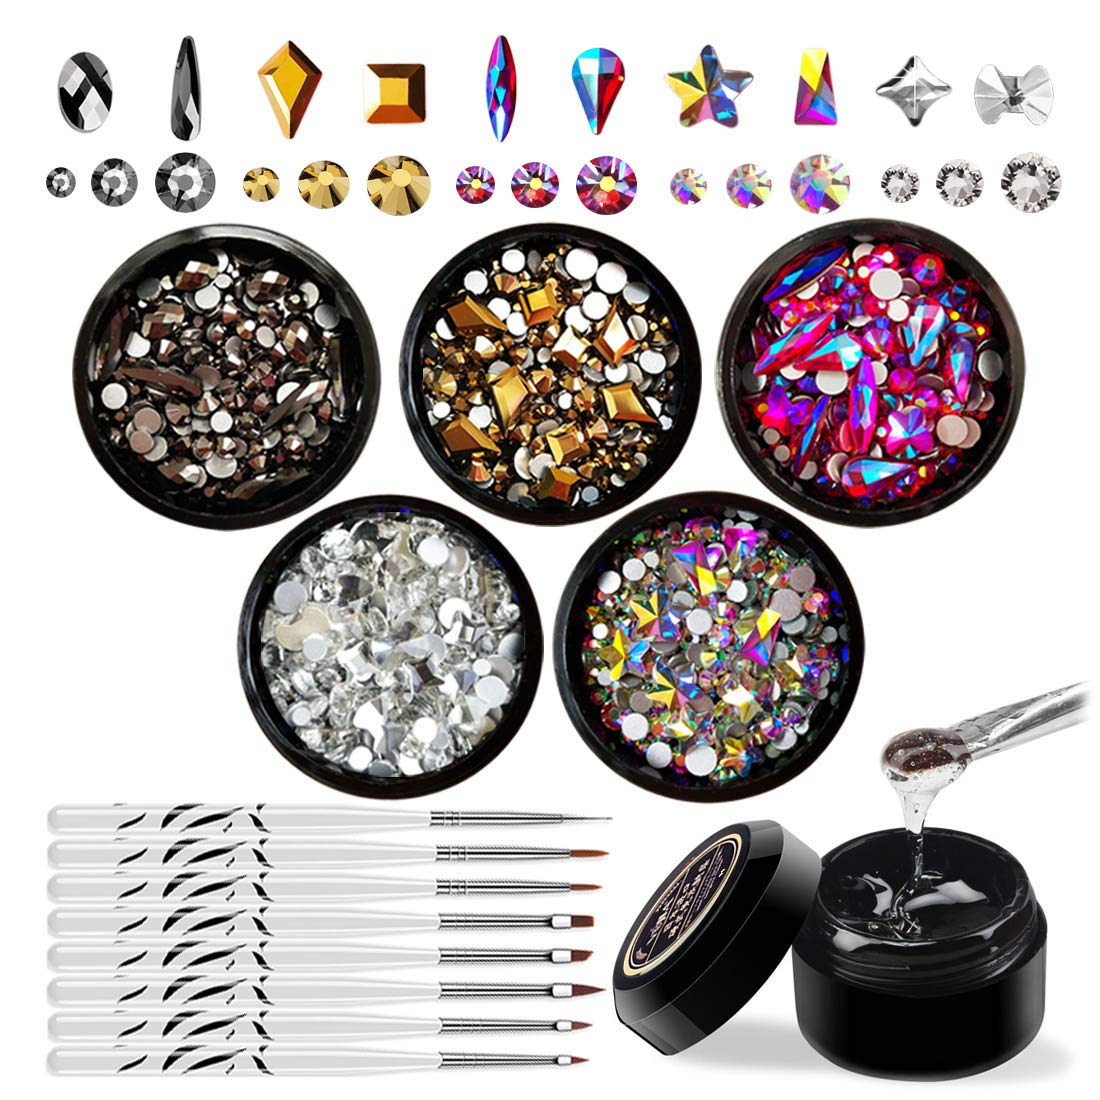 Review for Nail Art Rhinestones Set with Glue and Tools